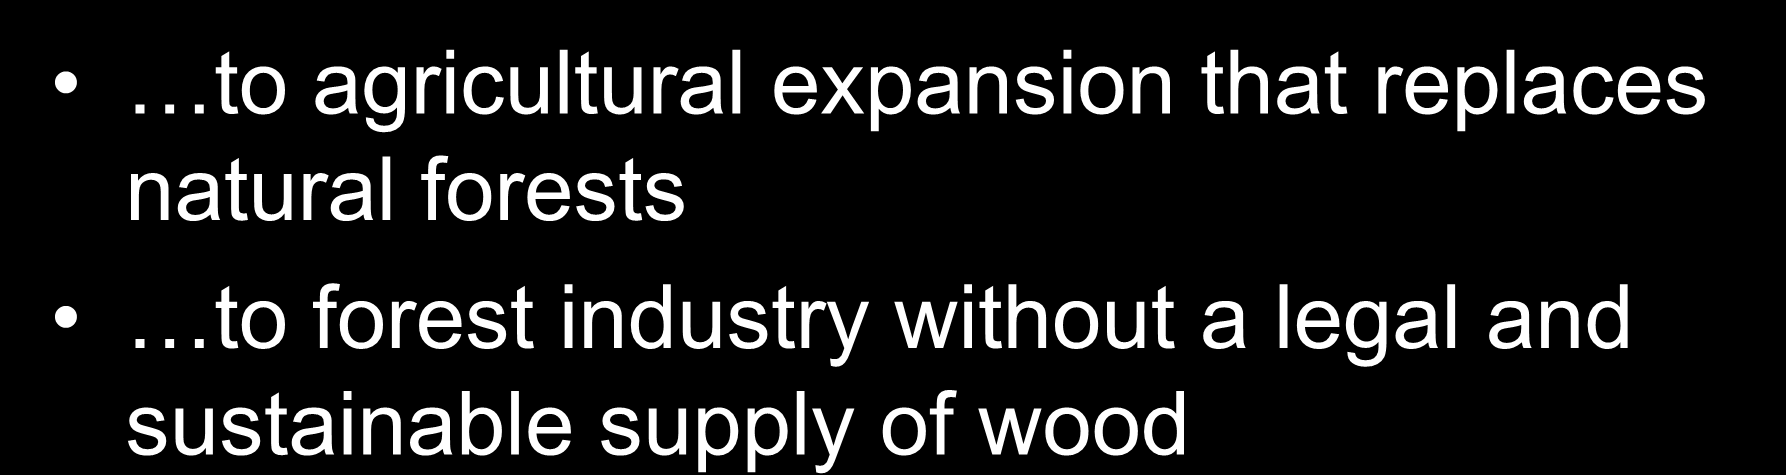 natural forests to forest industry